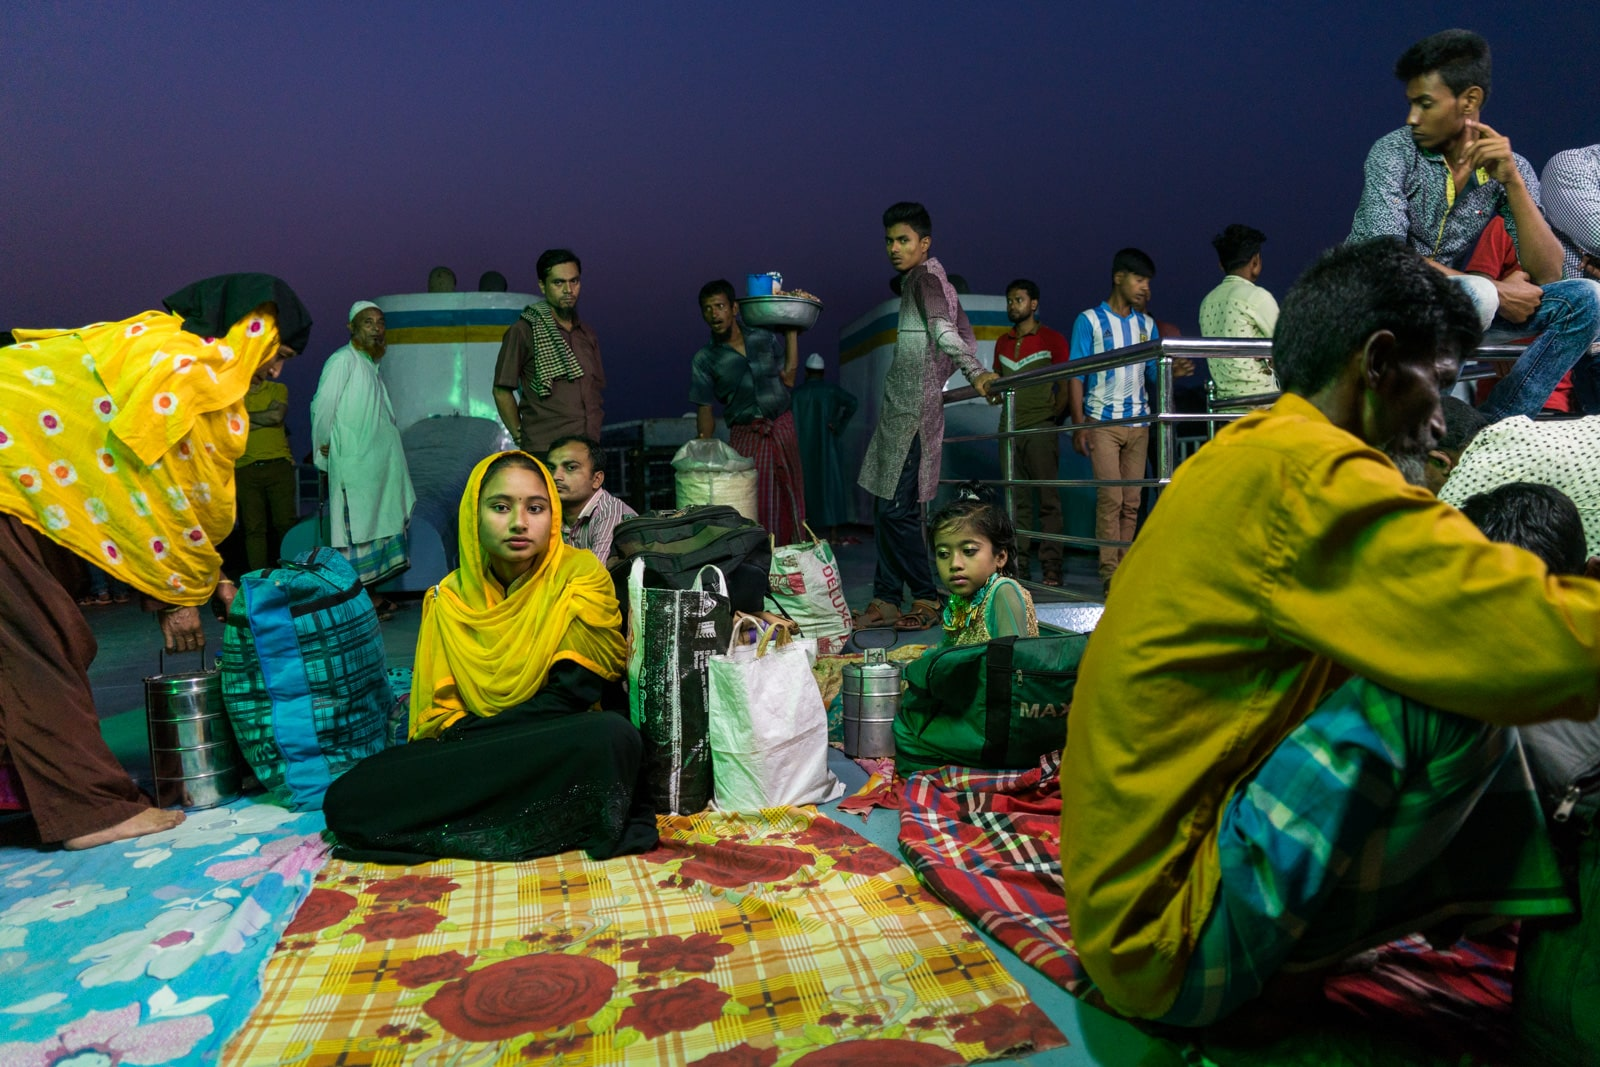 Launches from Hularhat to Dhaka, Bangladesh - Roof deck filled with people - Lost With Purpose travel blog